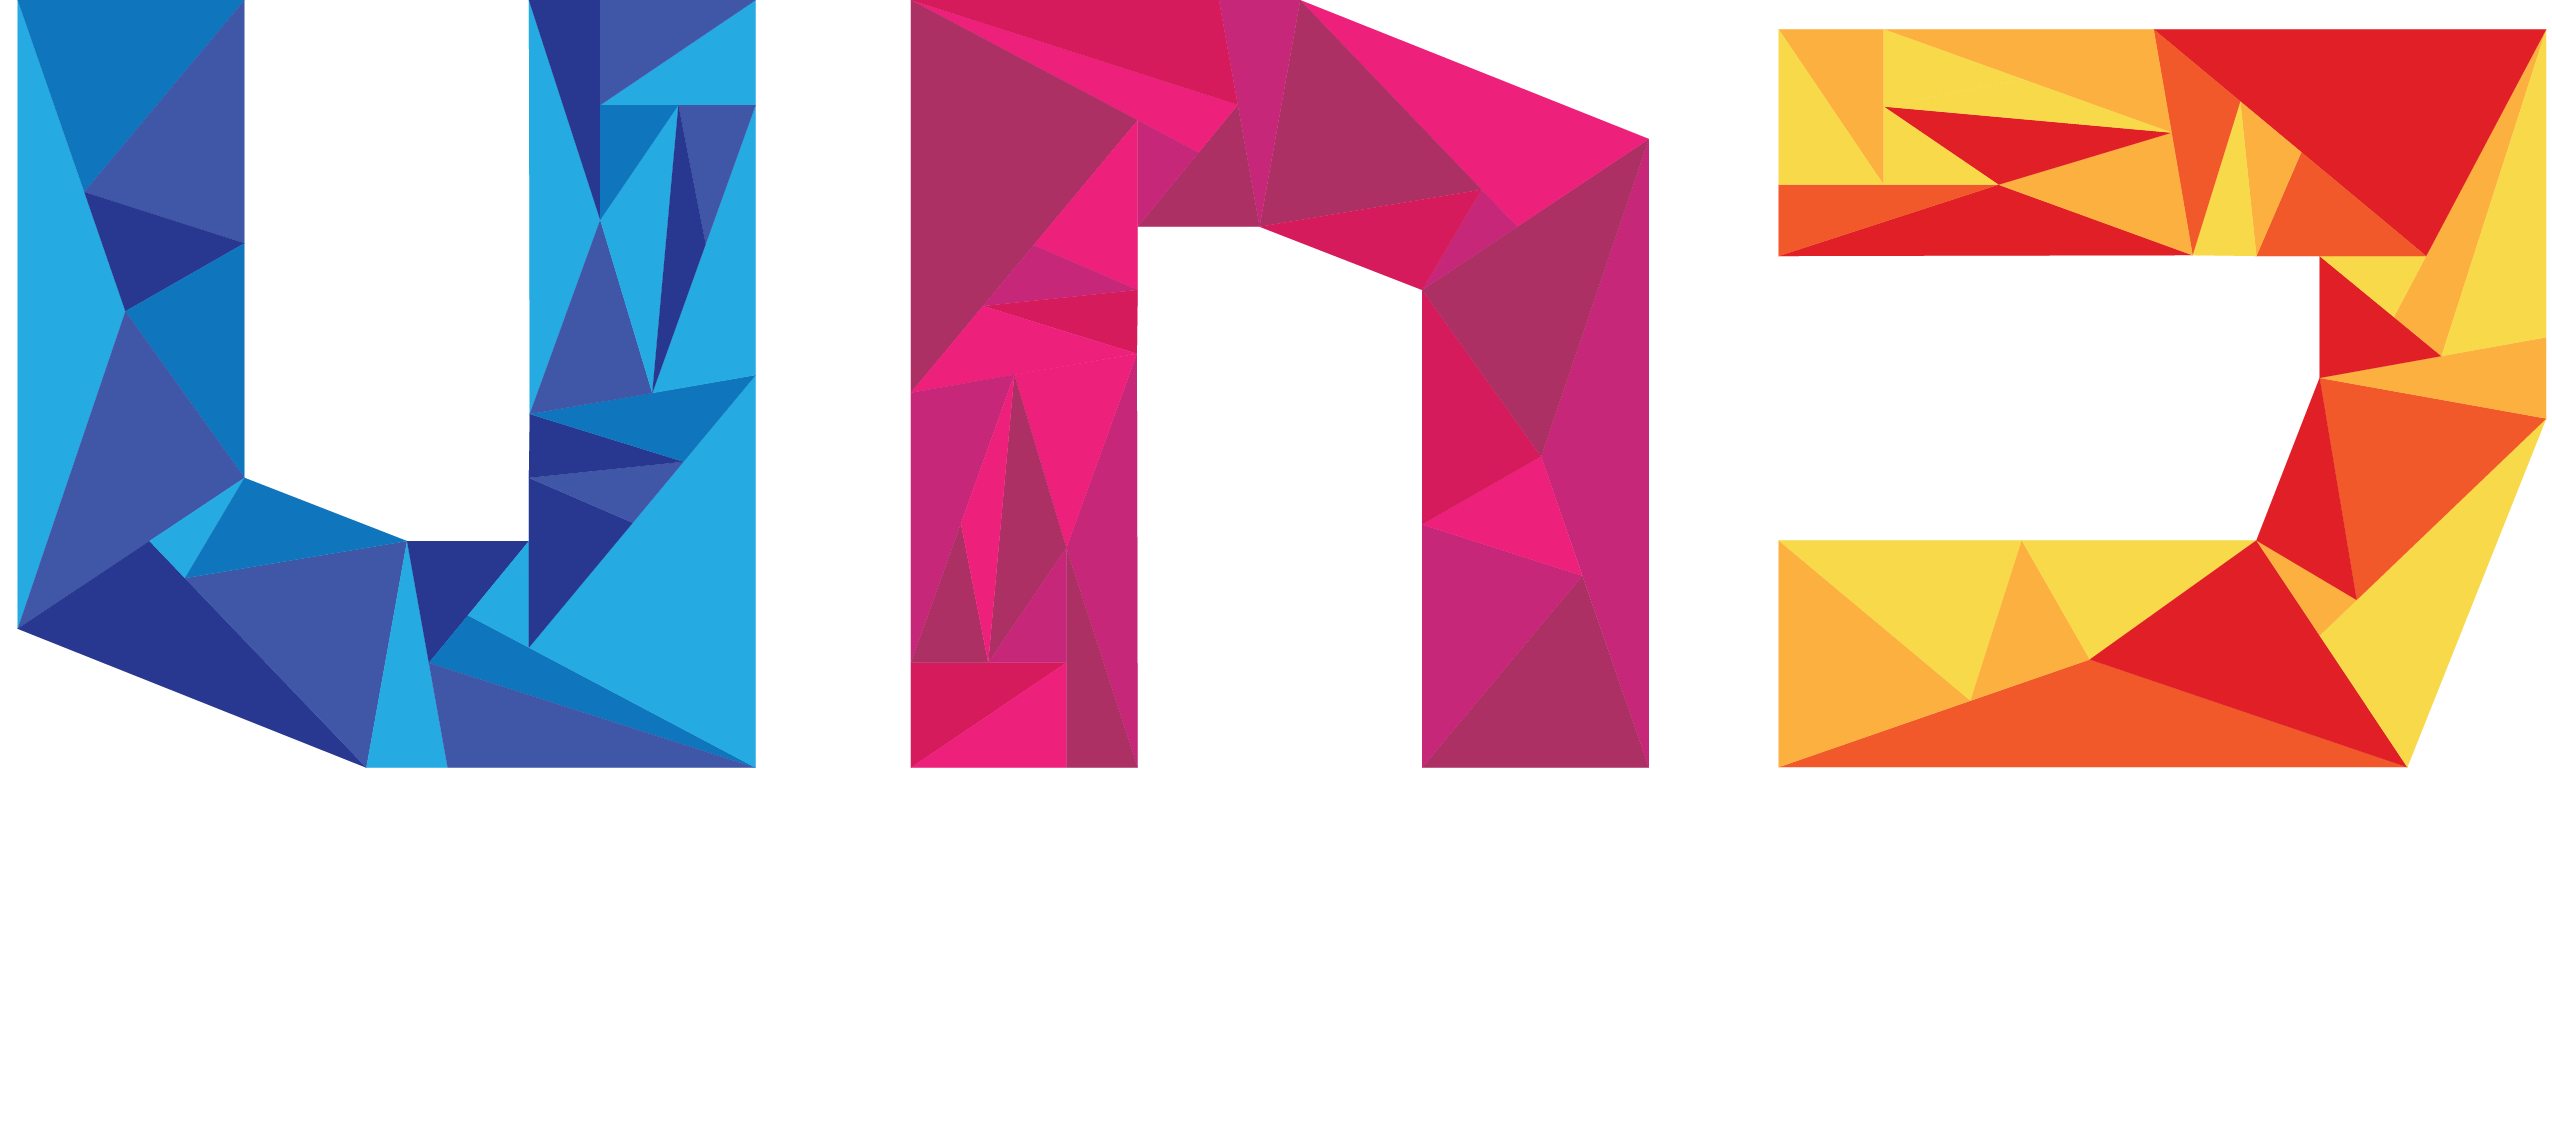 VND Signmakers